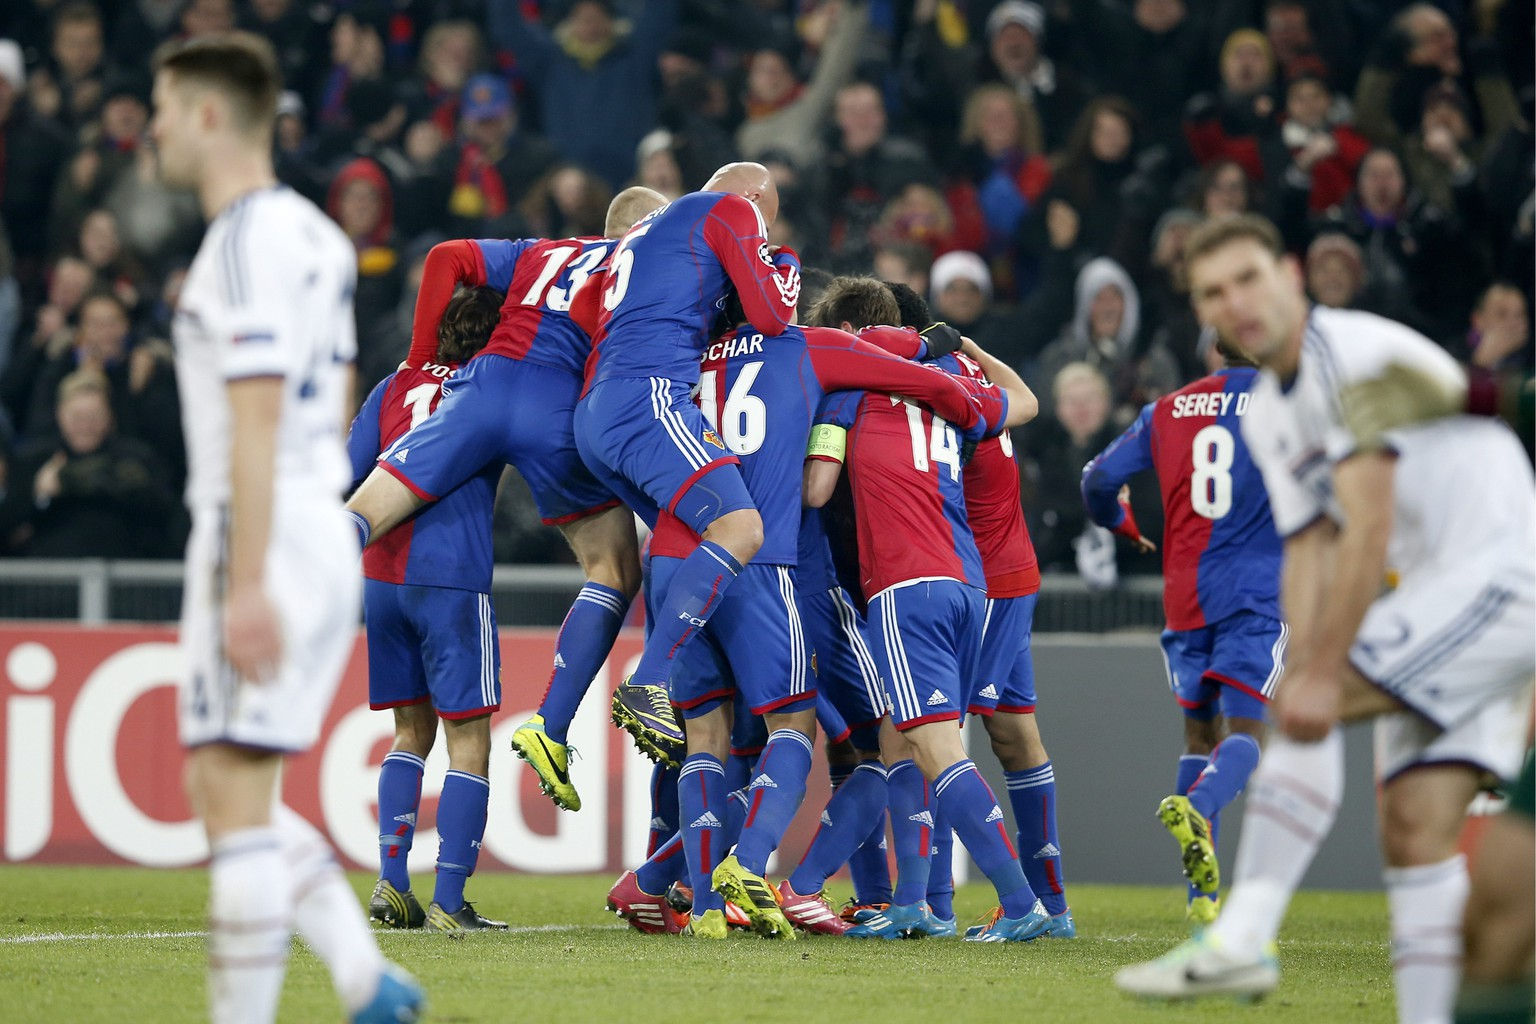 Basel's players celebrate after Basel's Mohamed Salah scored the 1-0 during an UEFA Champions League group E group stage matchday 5 soccer match between Switzerland's FC Basel 1893 and Britain's Chelsea FC at the St. Jakob-Park stadium in Basel, Switzerland, on Tuesday, November 26, 2013. (KEYSTONE/Peter Klaunzer)